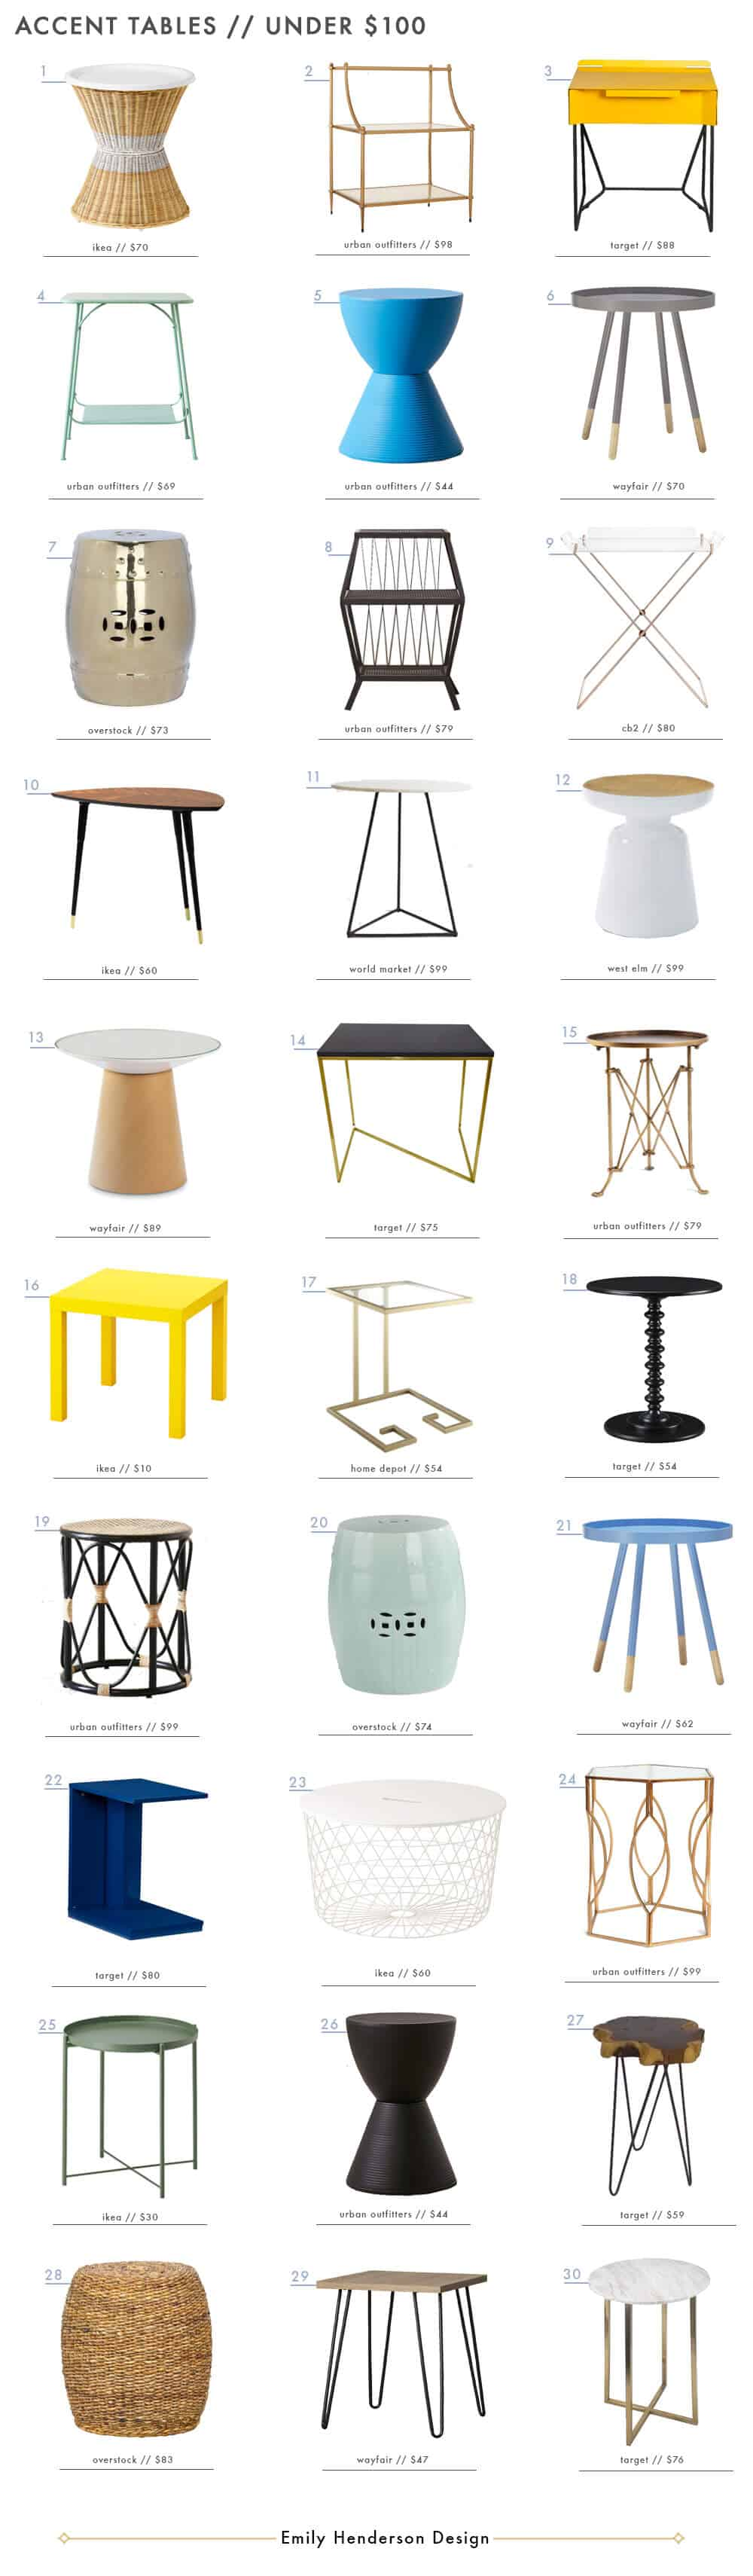 - 30 Accent Tables Under $100 - Emily Henderson